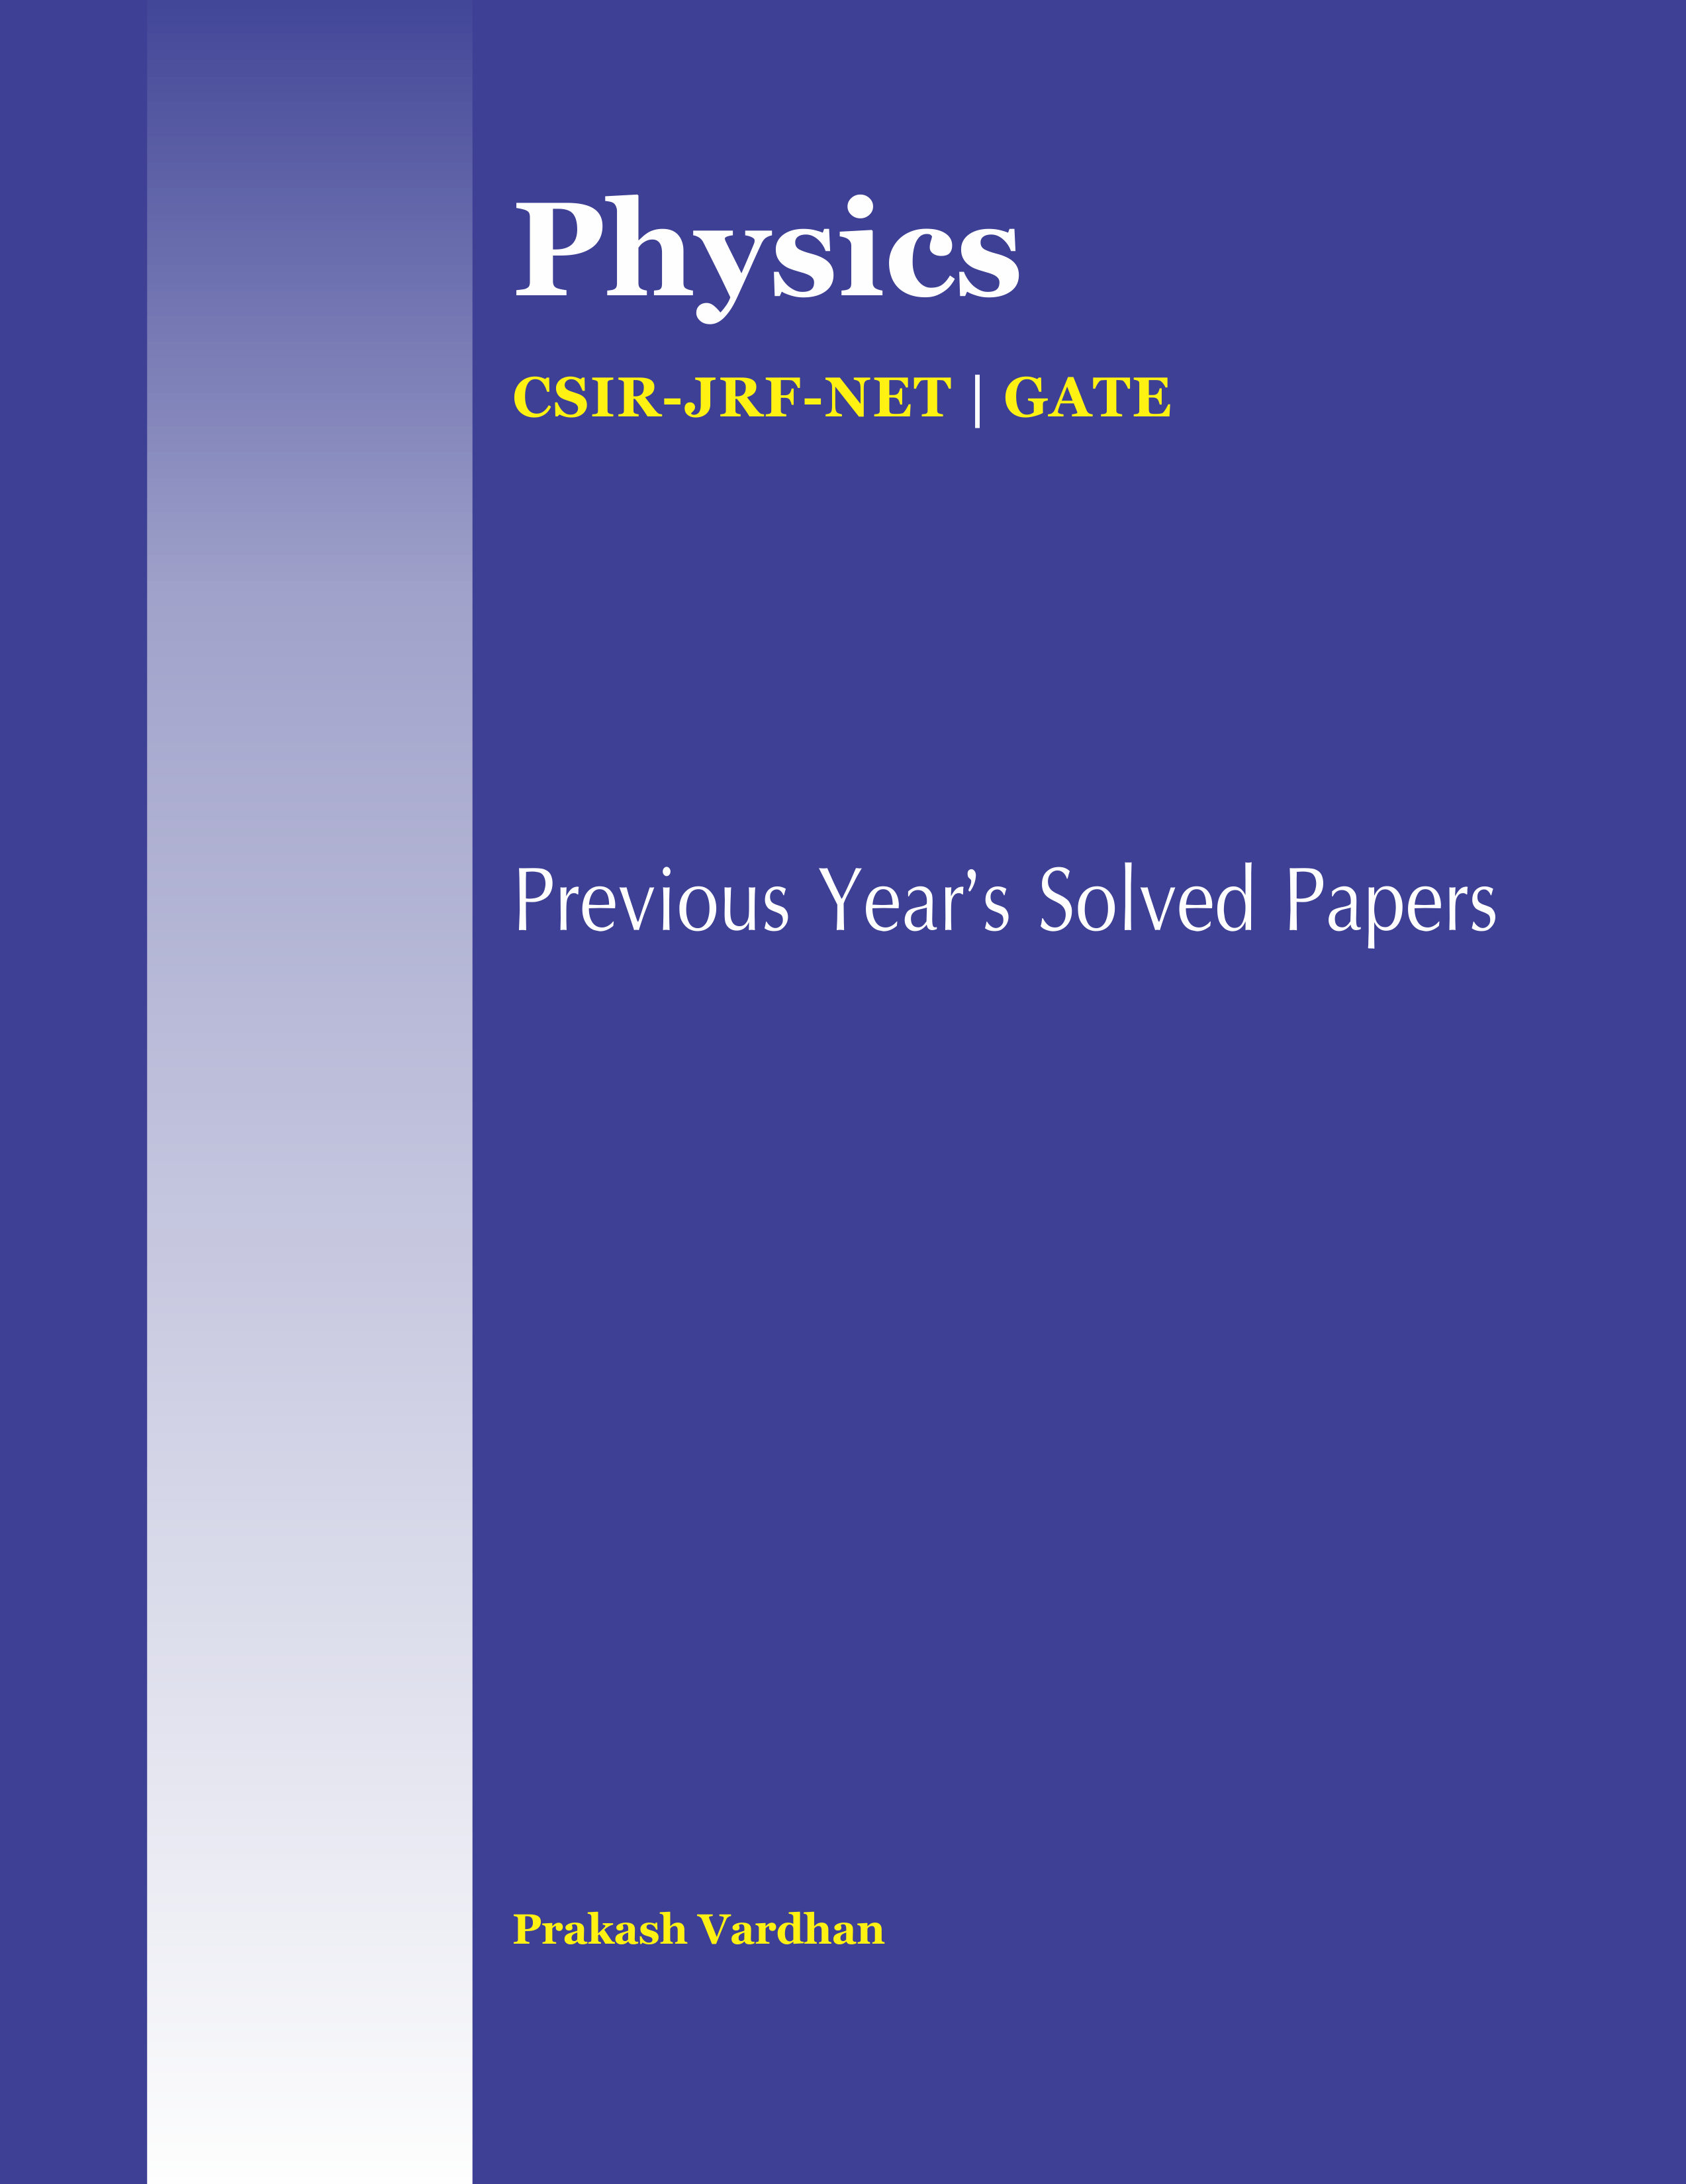 Physics Sciences CSIR-JRF-NET GATE